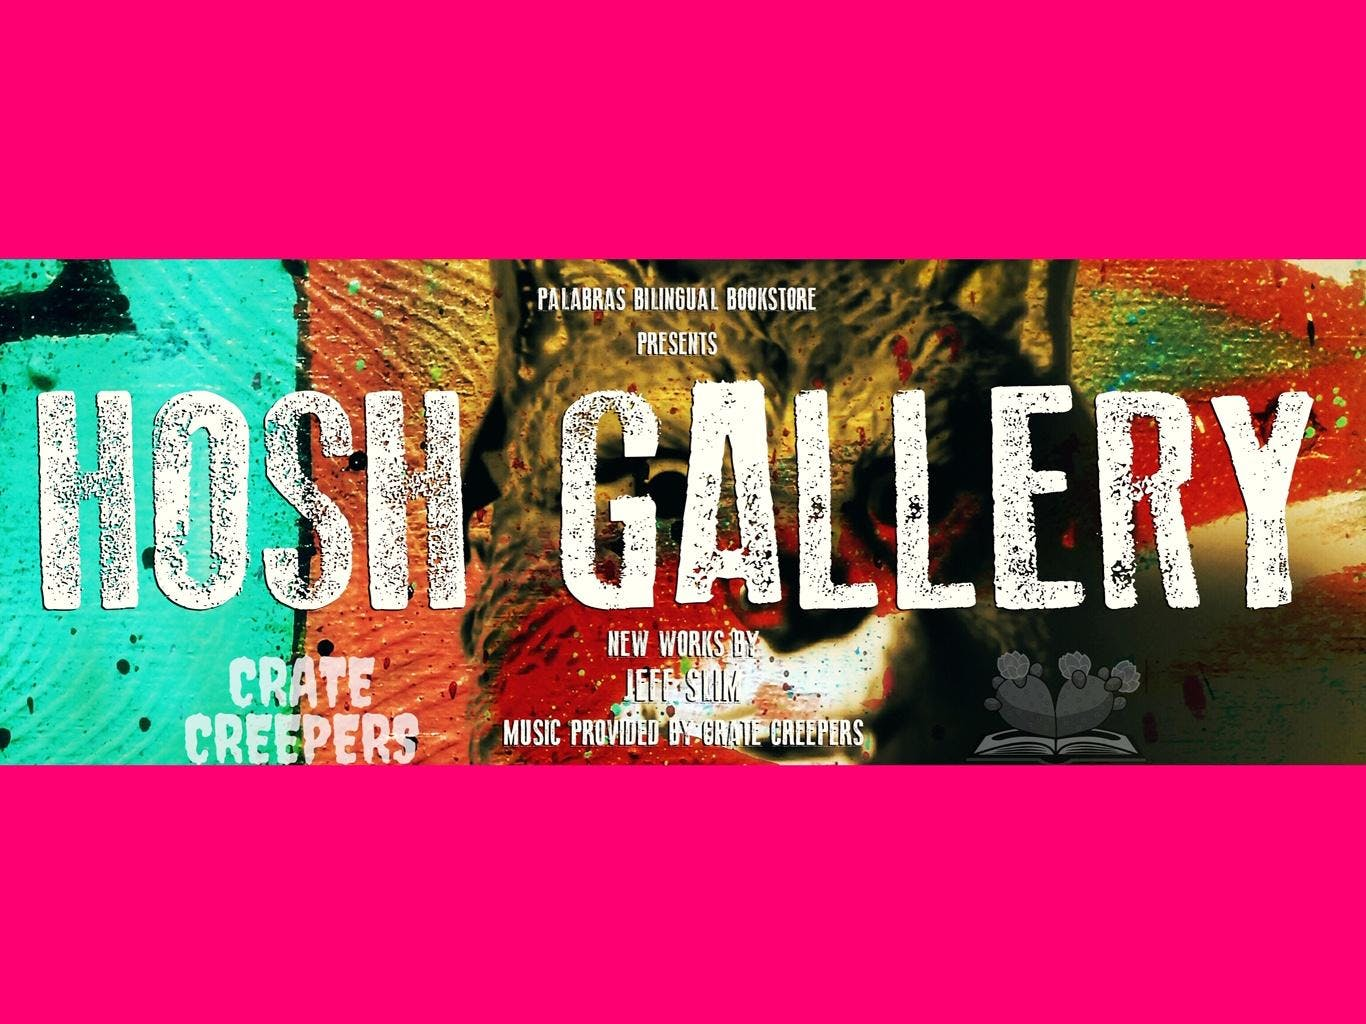 HOSH Gallery & The Crate Creepers